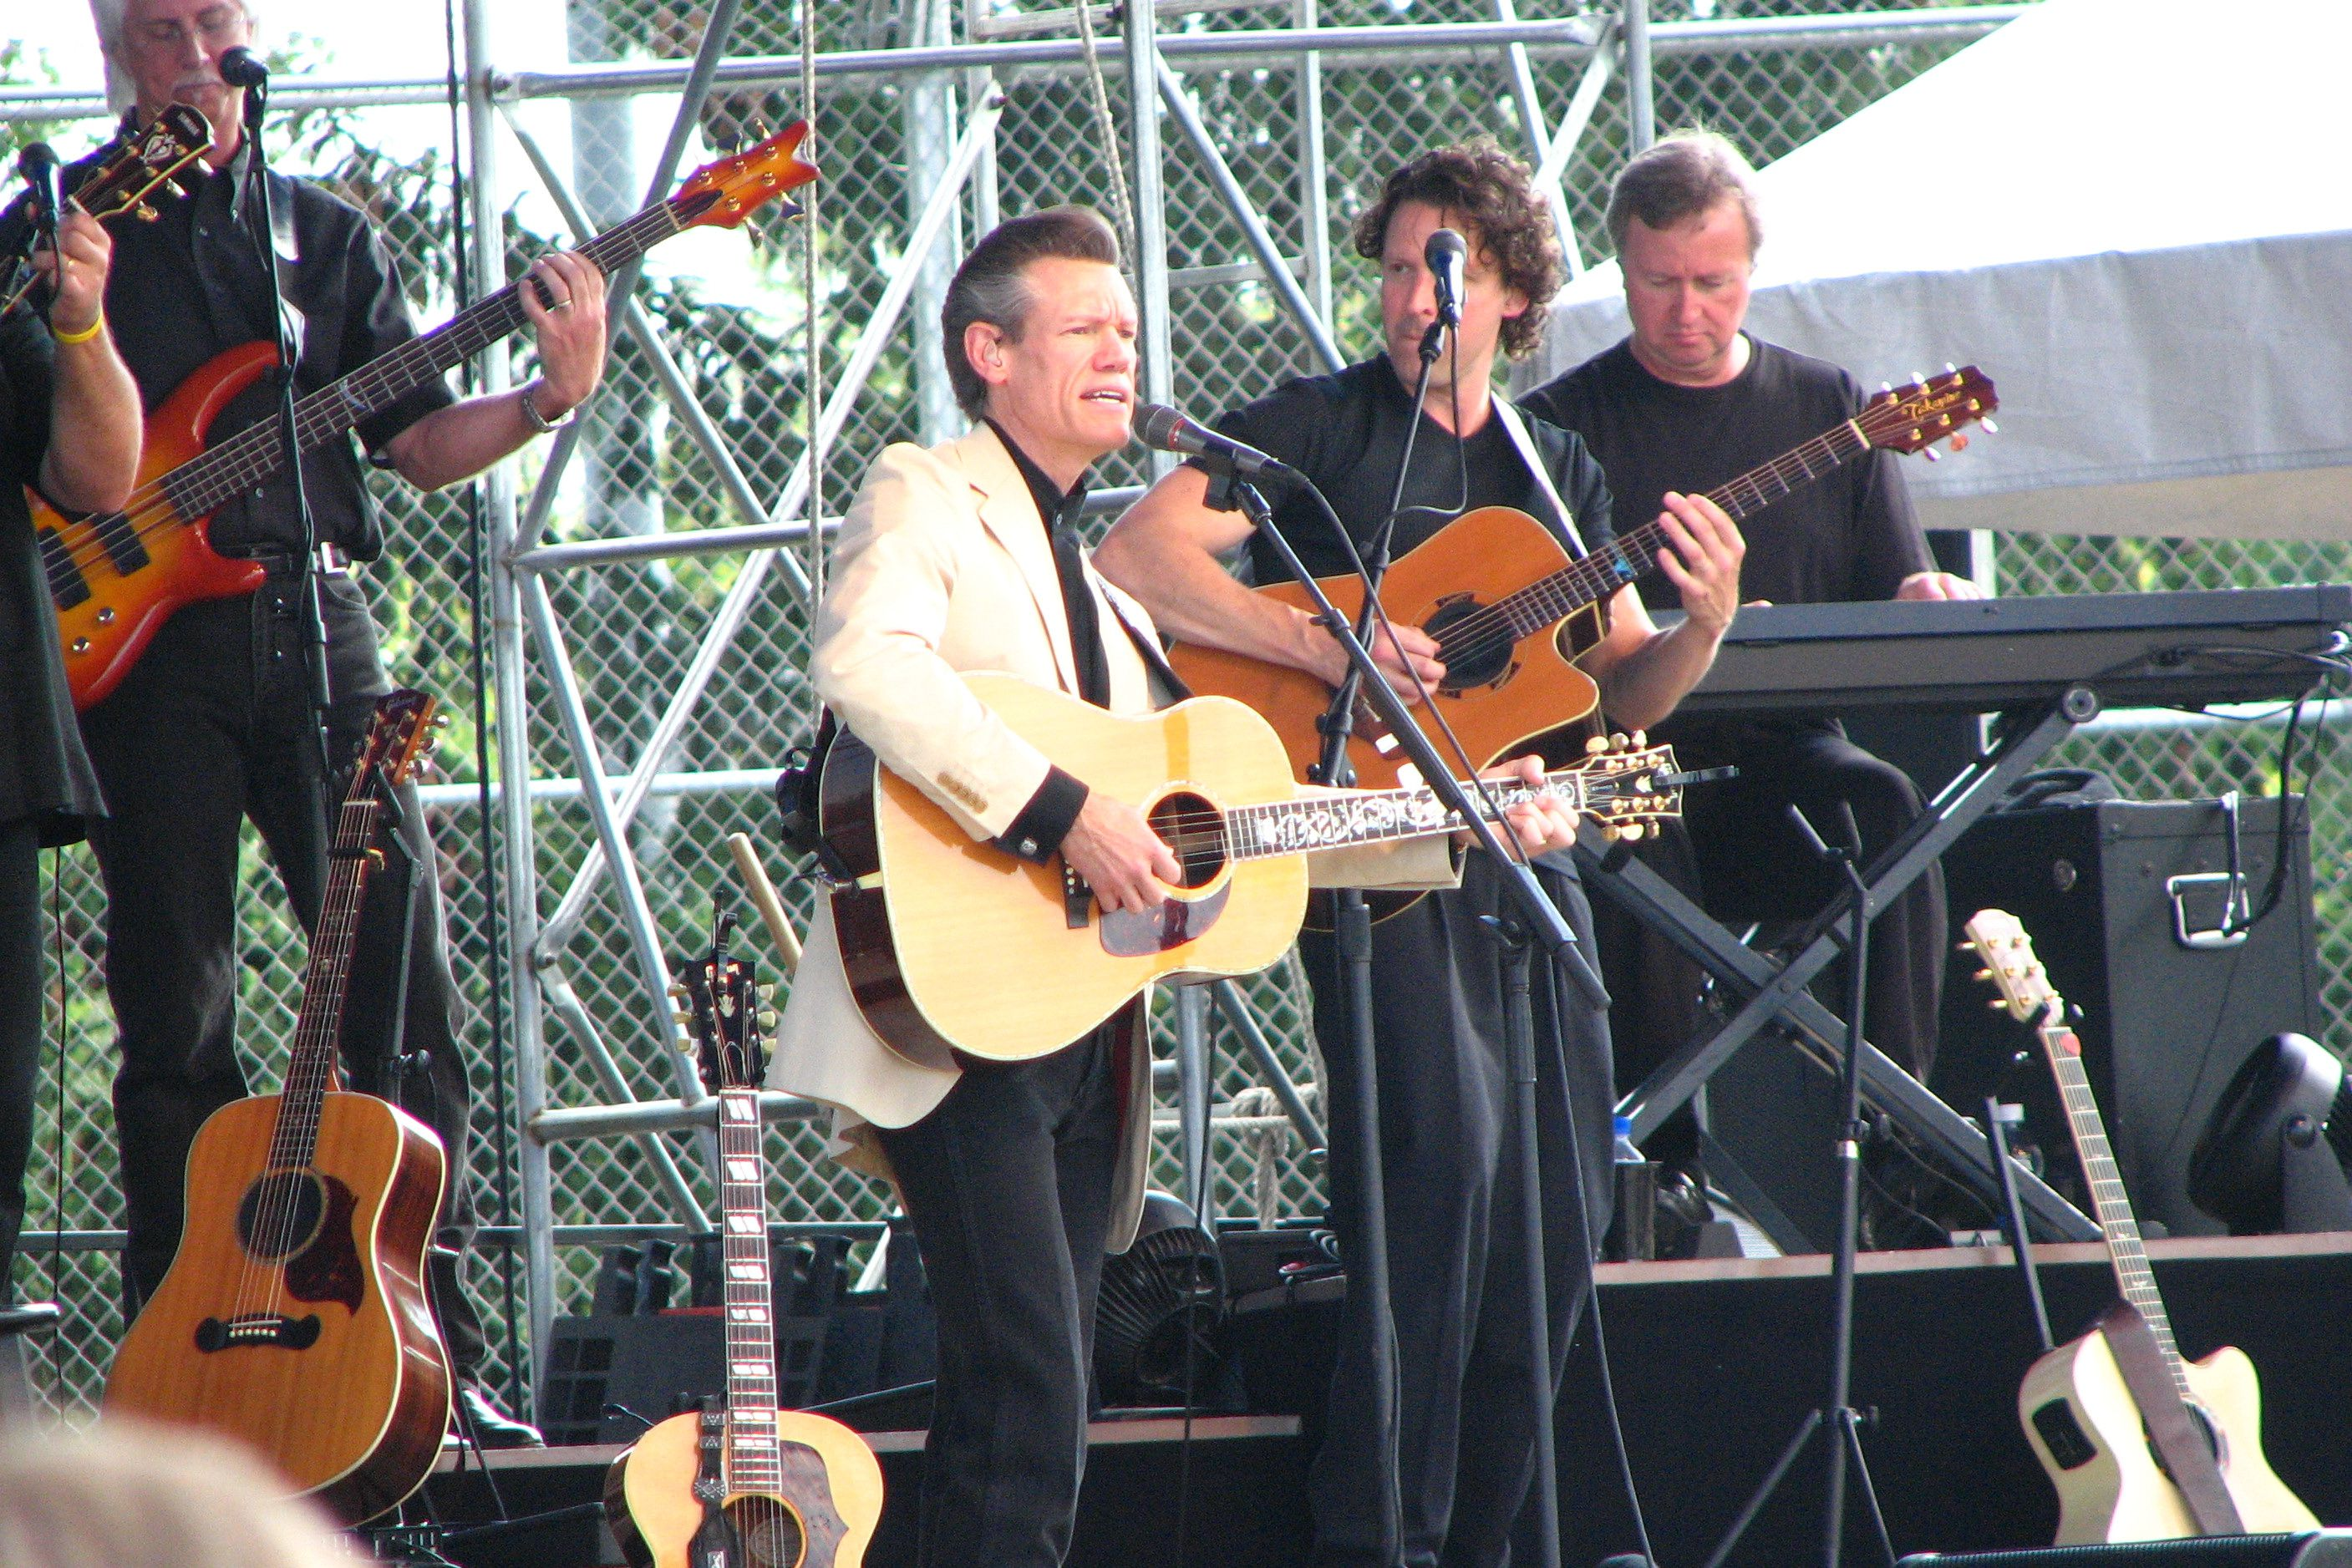 Randy Travis performs on an outdoor stage.